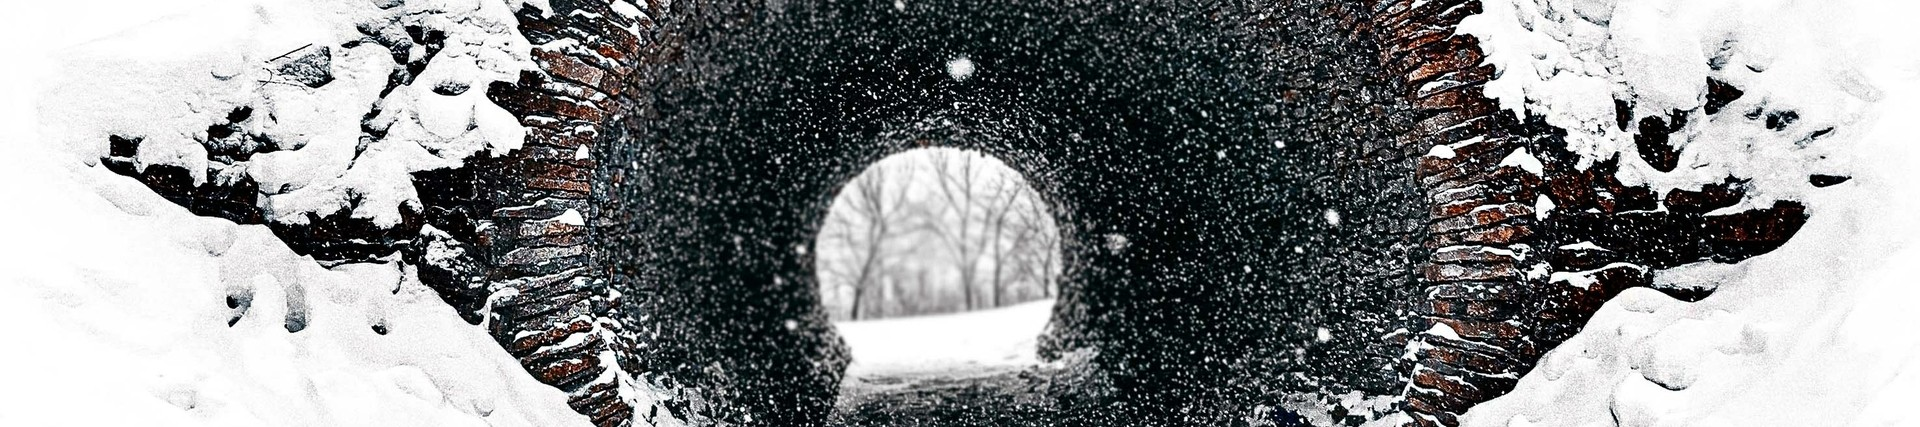 Image of a tunnel in the snow